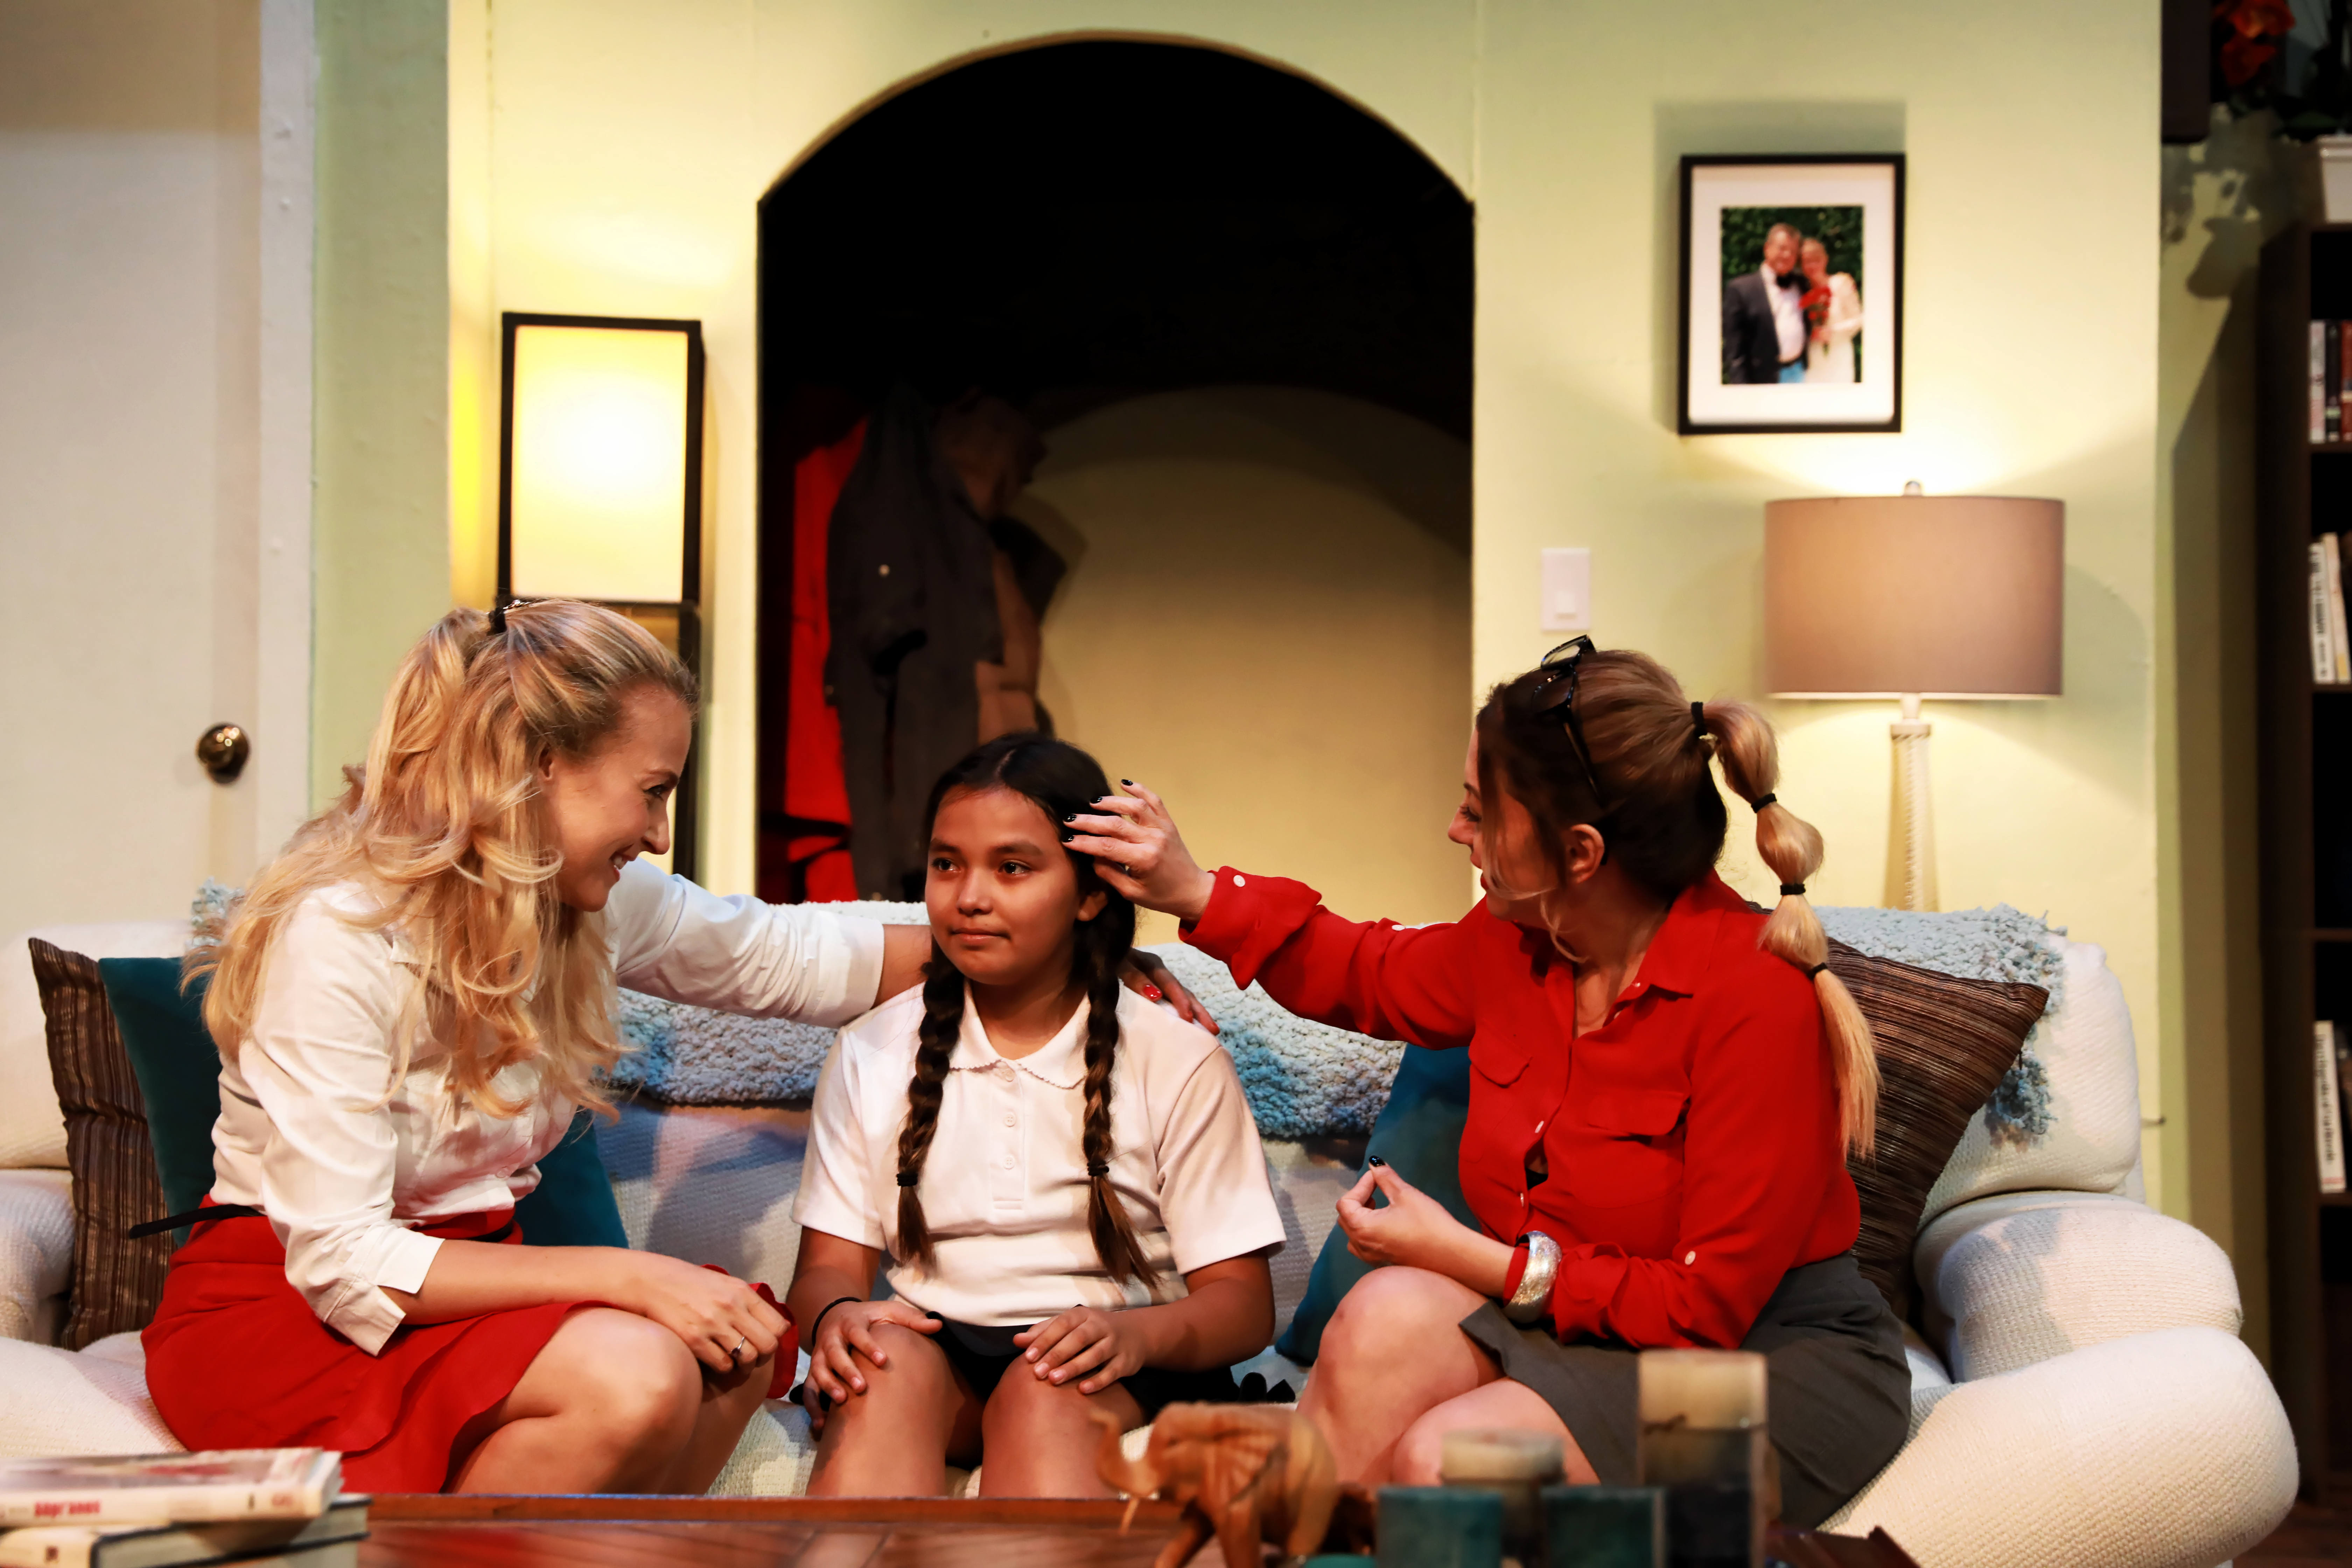 Still of Janine as Samantha in stage play Turn Off The Lights in Hollywood.